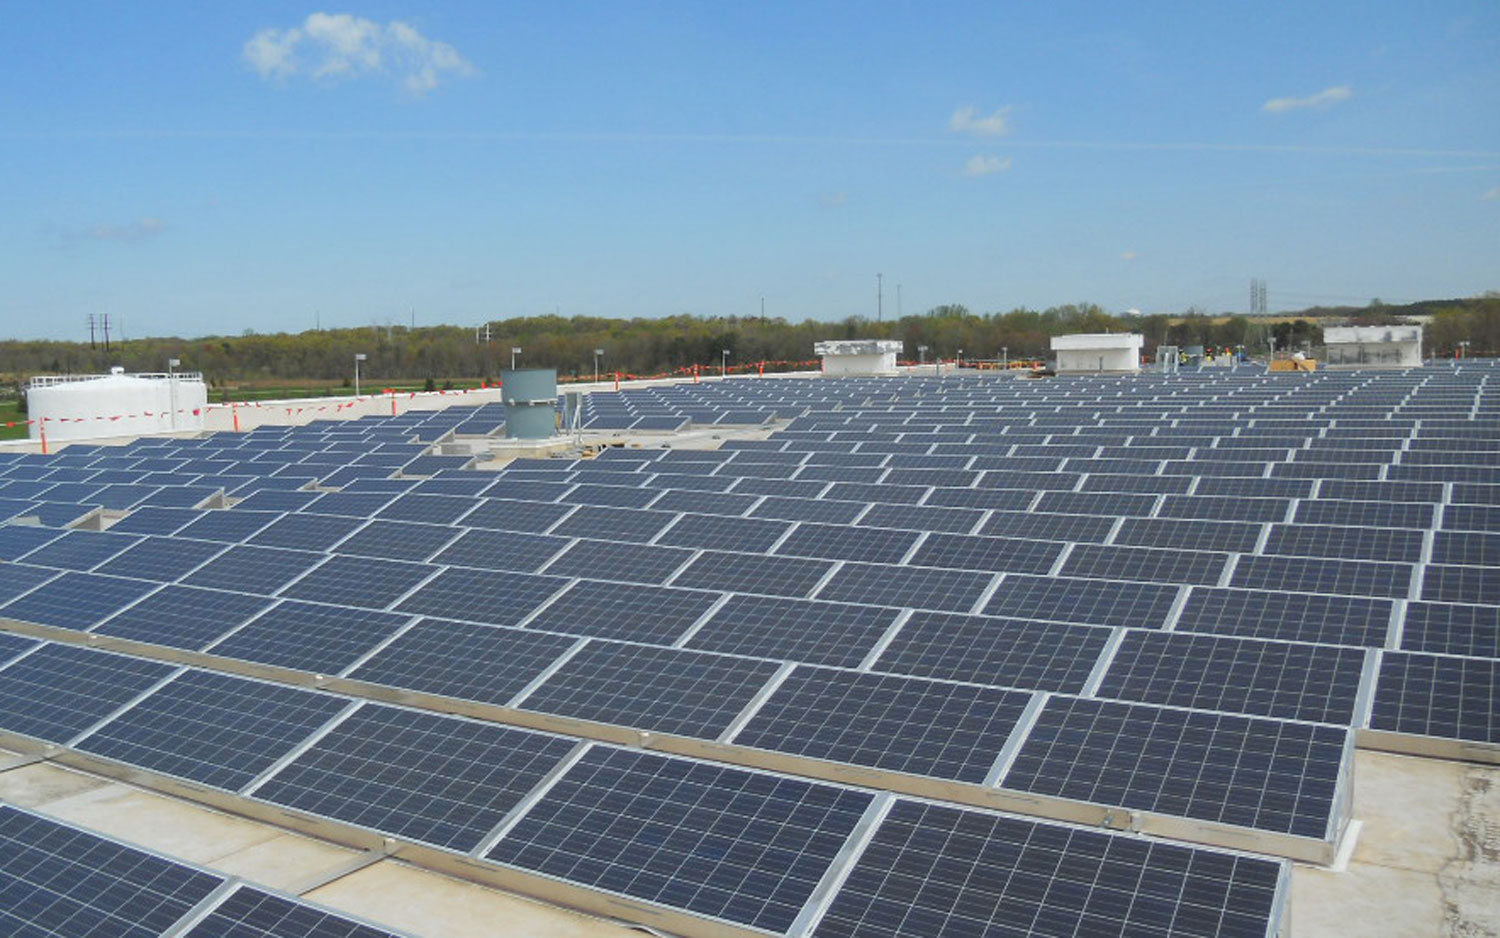 general-motors-heavy-duty-transmission-building-rooftop-solar-array-view